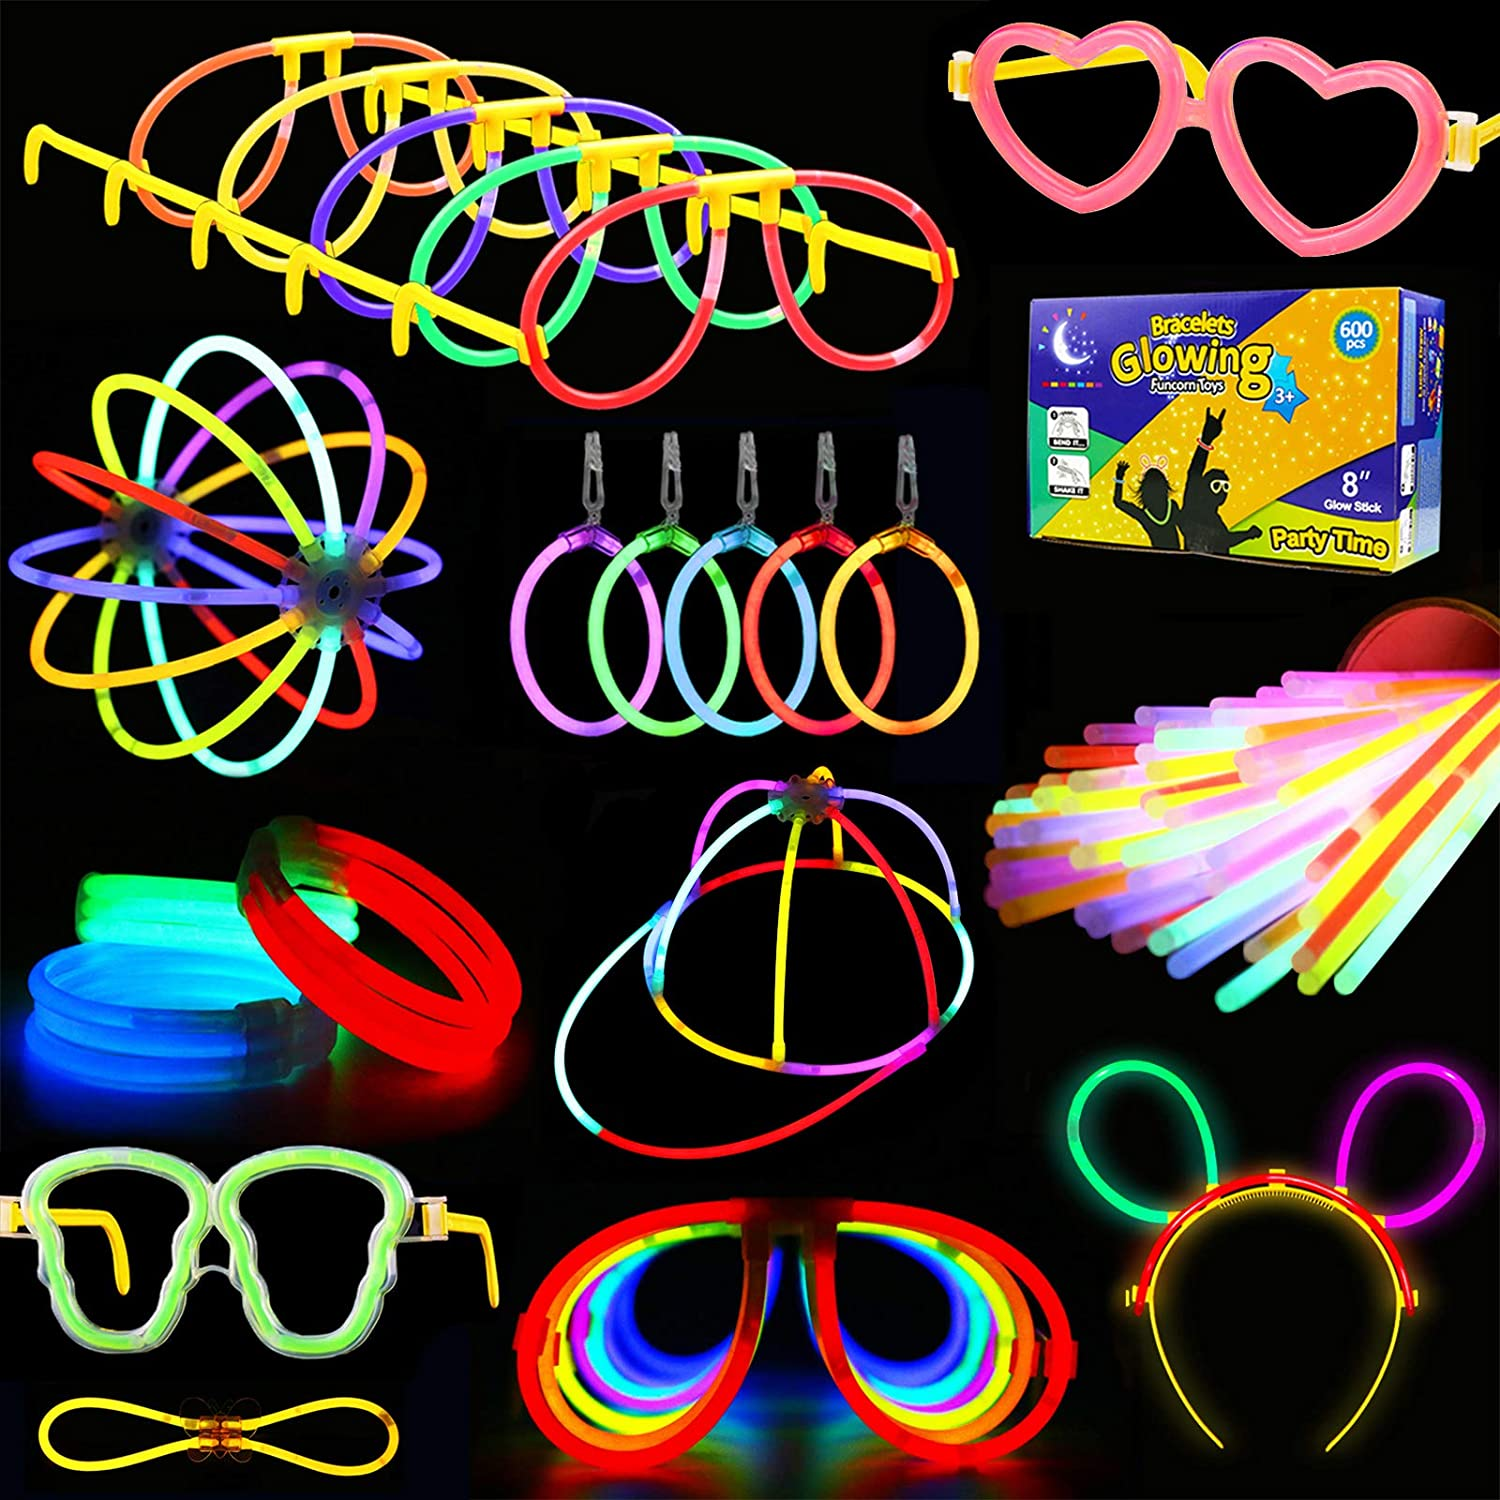 KarberDark Glowstick, (609 Pcs Total) 240 Glow Sticks Bulk 7 Colour and Connectors for Caps Bracelets Necklaces Balls Eyeglasses and More, Light up Toy Glow in The Dark Stick for Kid Party Birthday: Toys & Games